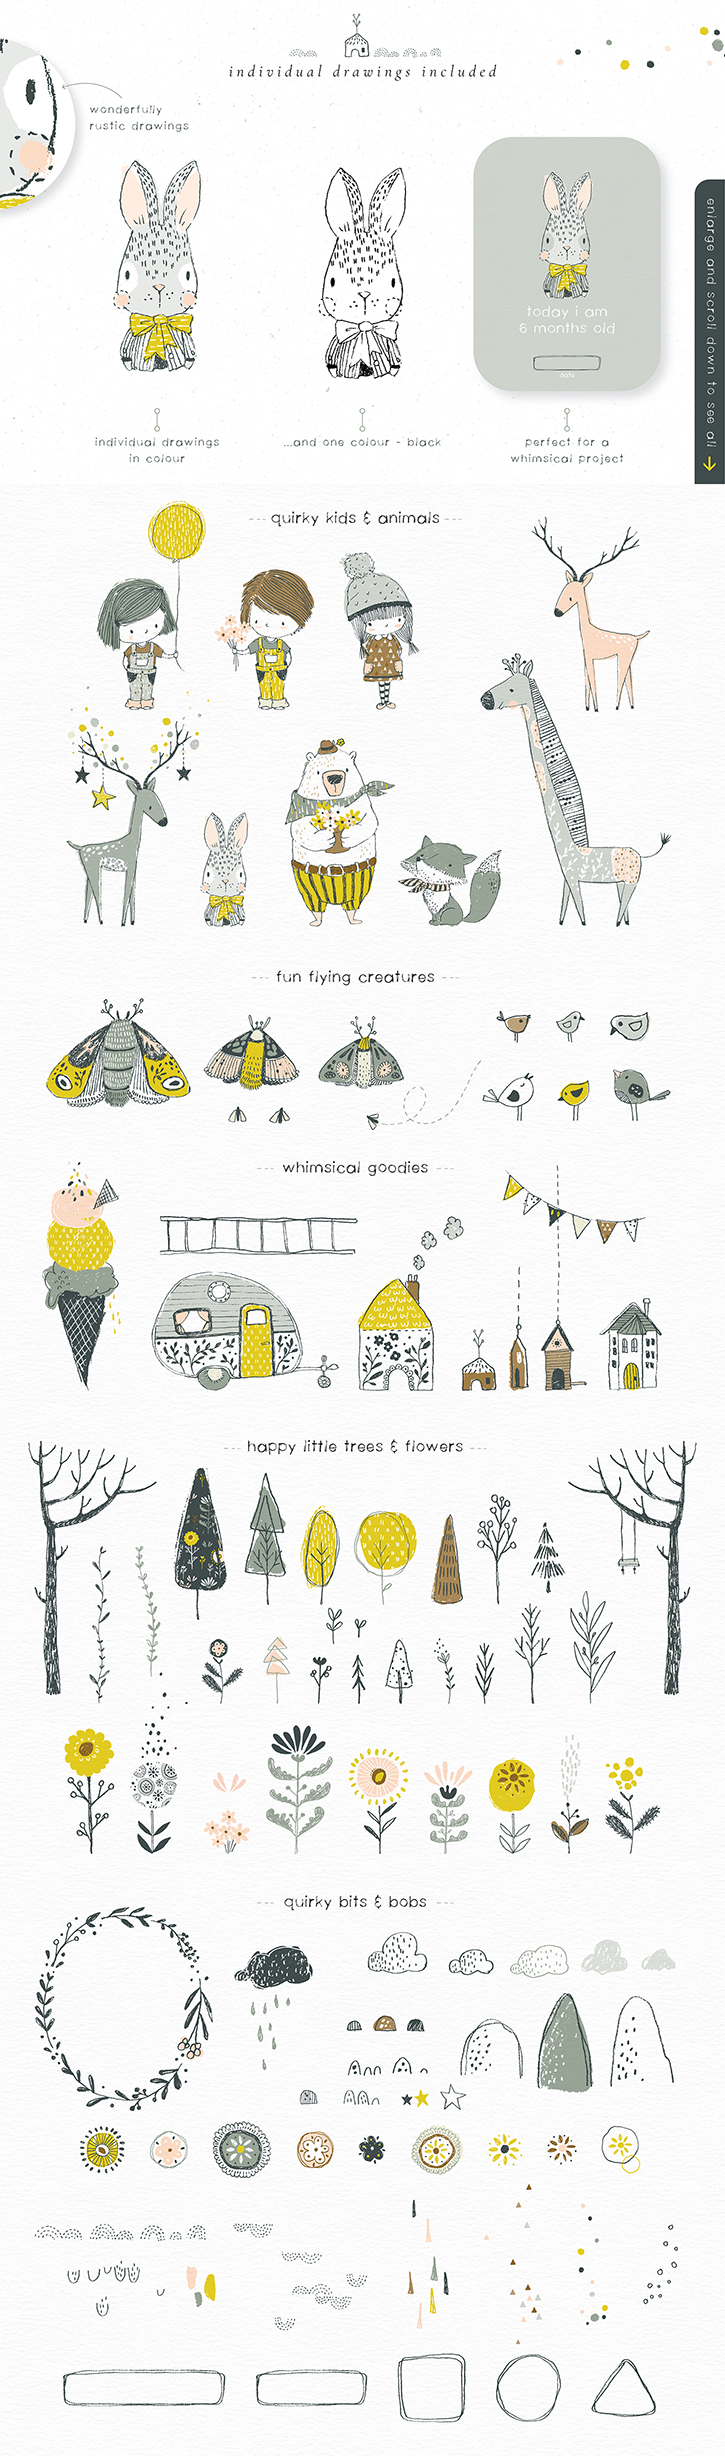 quirky and whimsical illustrations and clipart